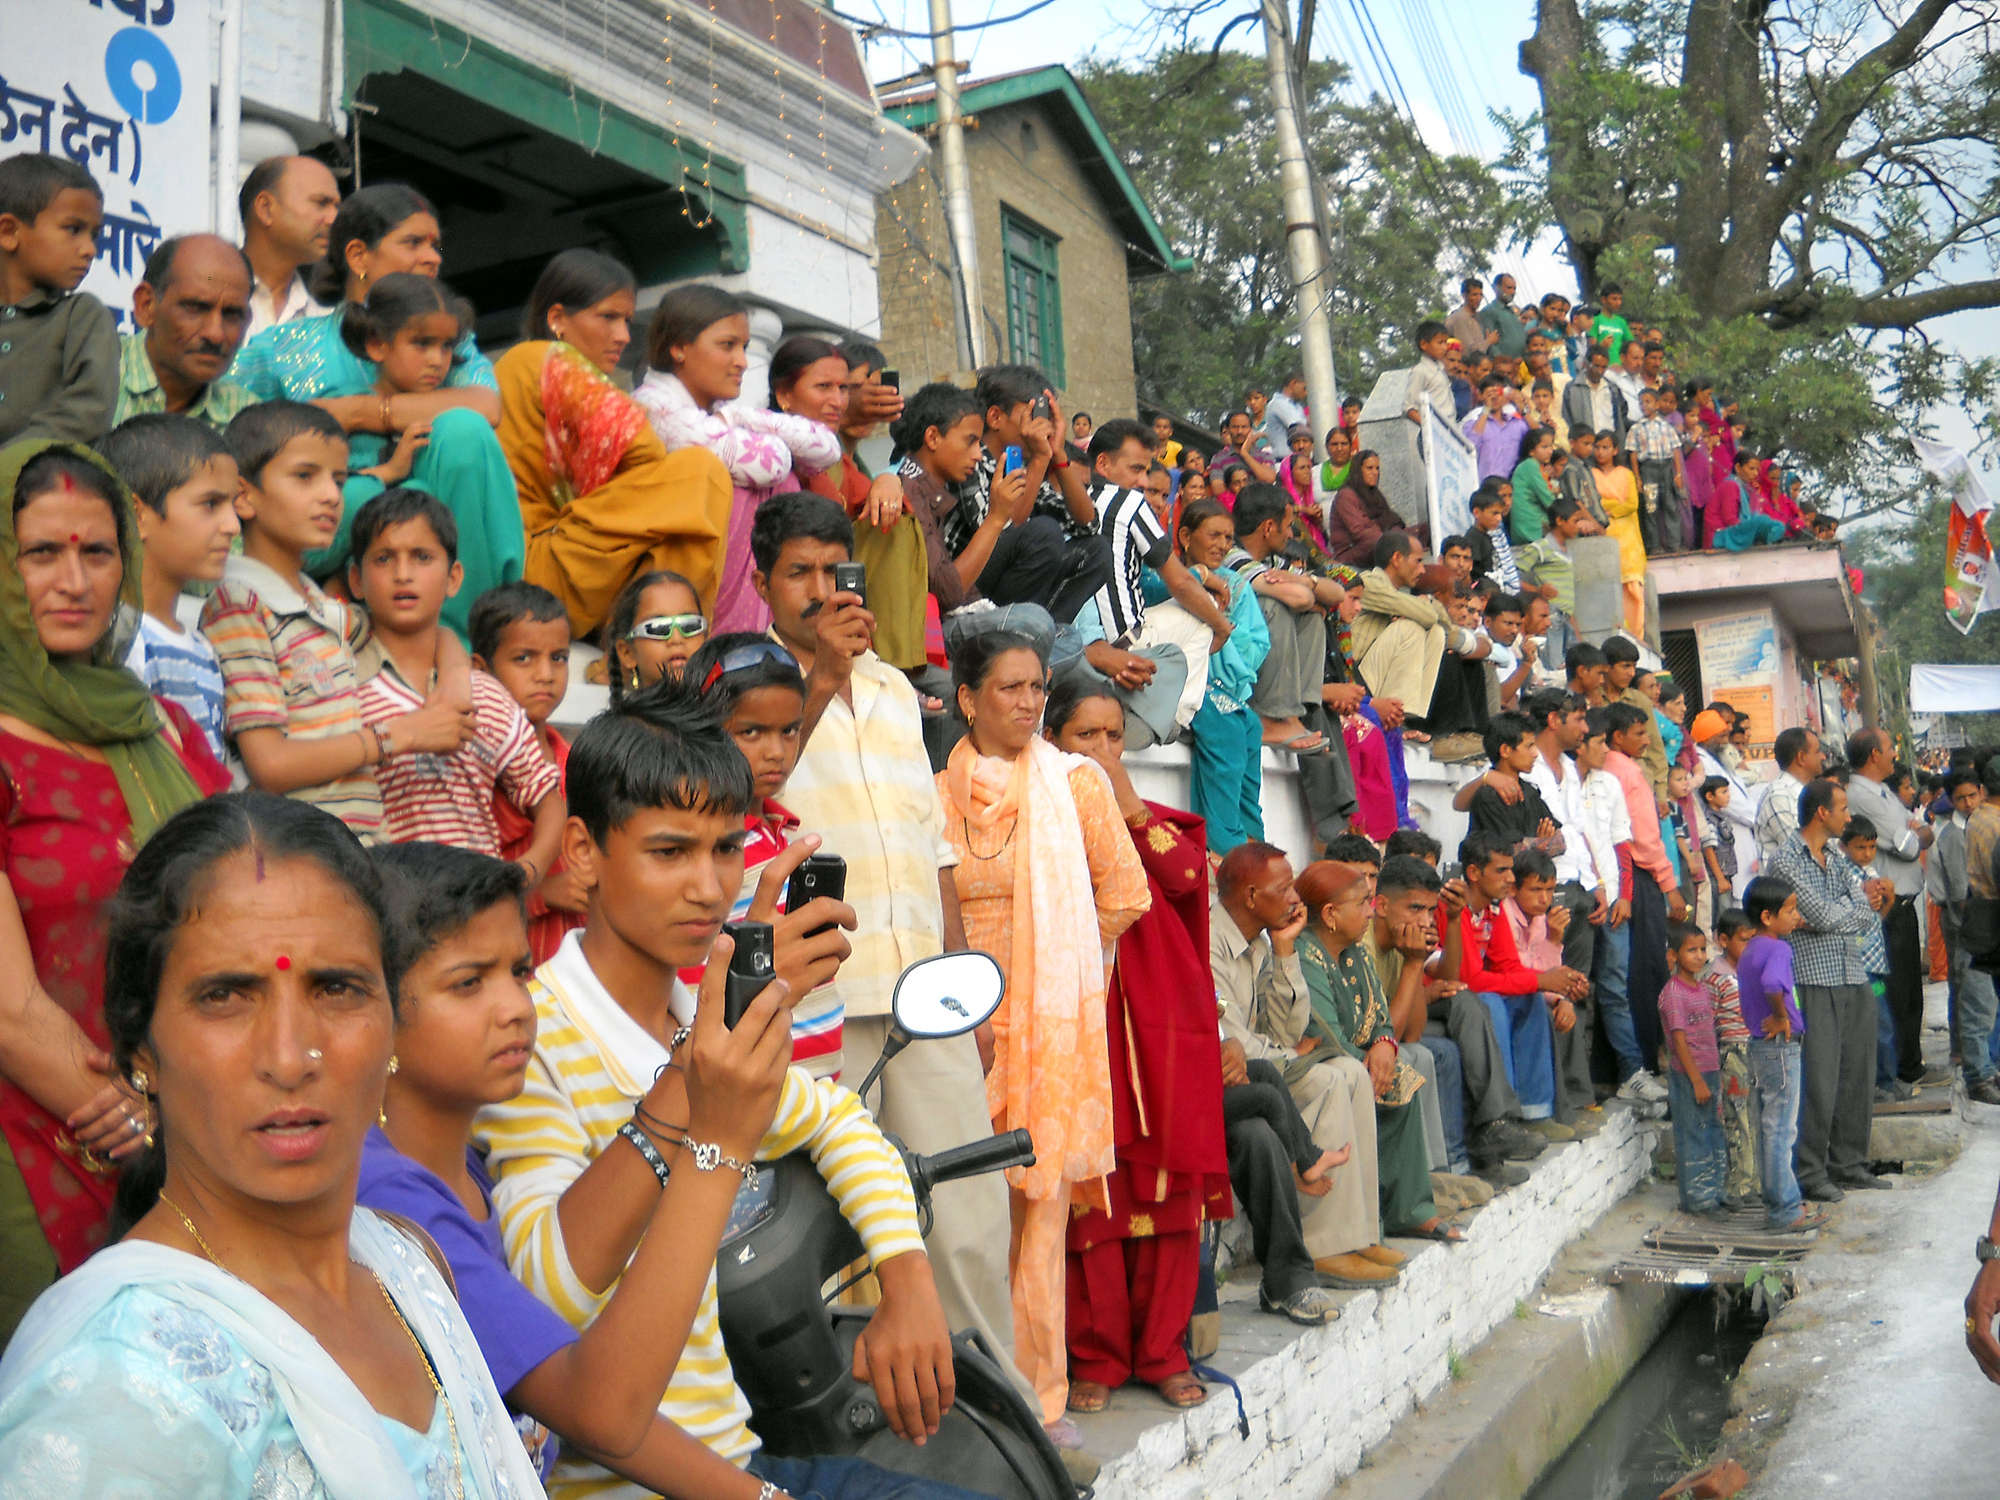 Onlookers during the Minjar Festival in Chamba, Himachal Festival